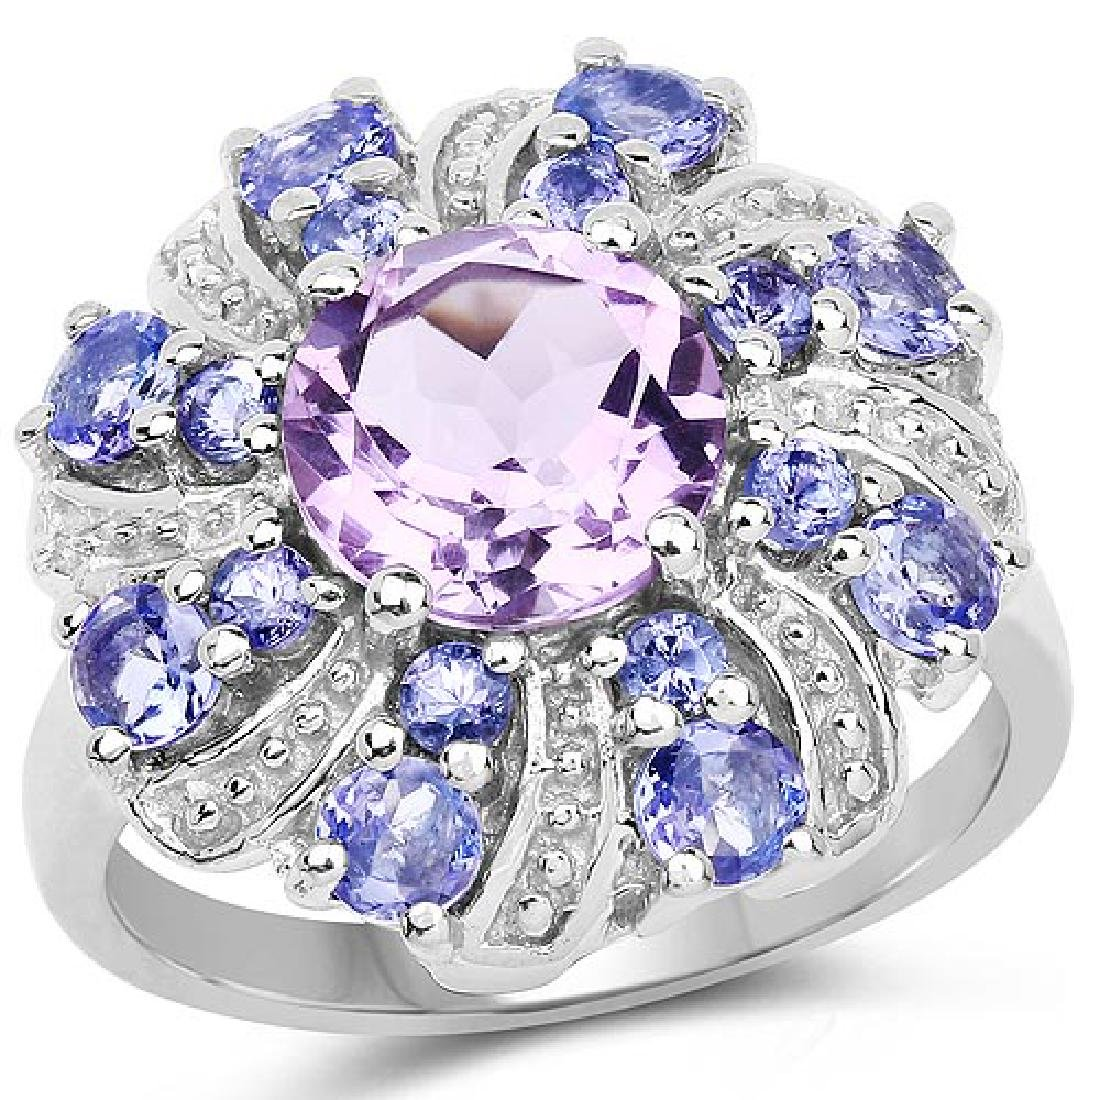 2.88 Carat Genuine Amethyst and Tanzanite .925 Sterling